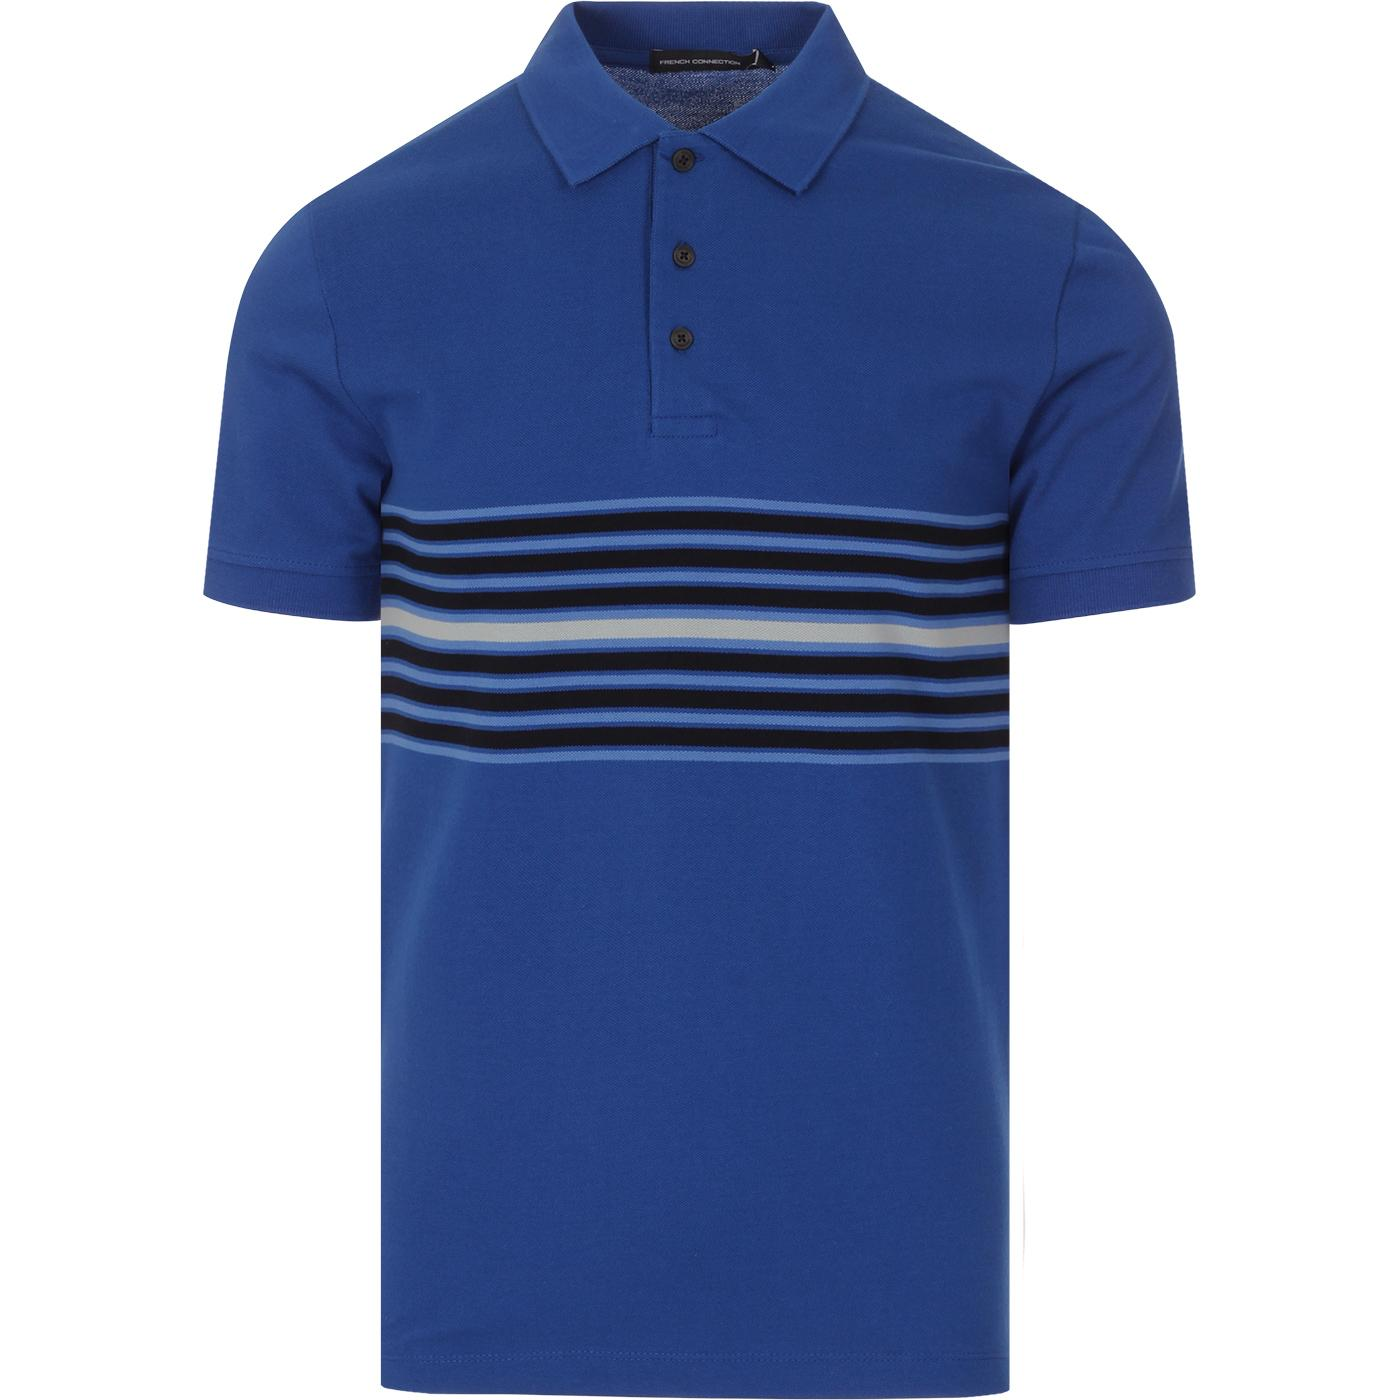 FRENCH CONNECTION Retro Engineered Stripe Polo